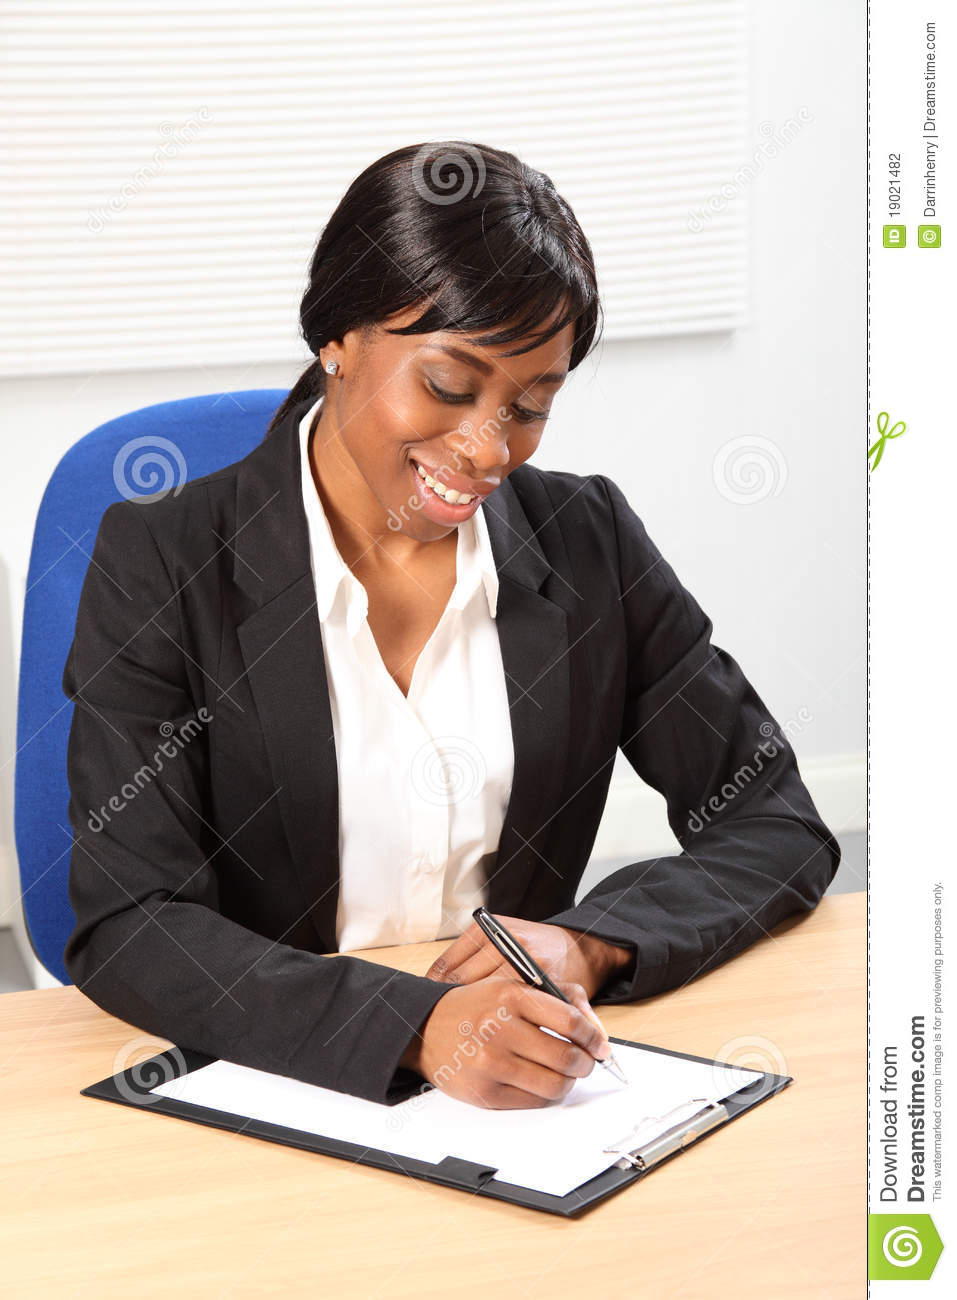 woman sitting in chair clear dining room covers beautiful black business signing document stock photography - image: 19021482